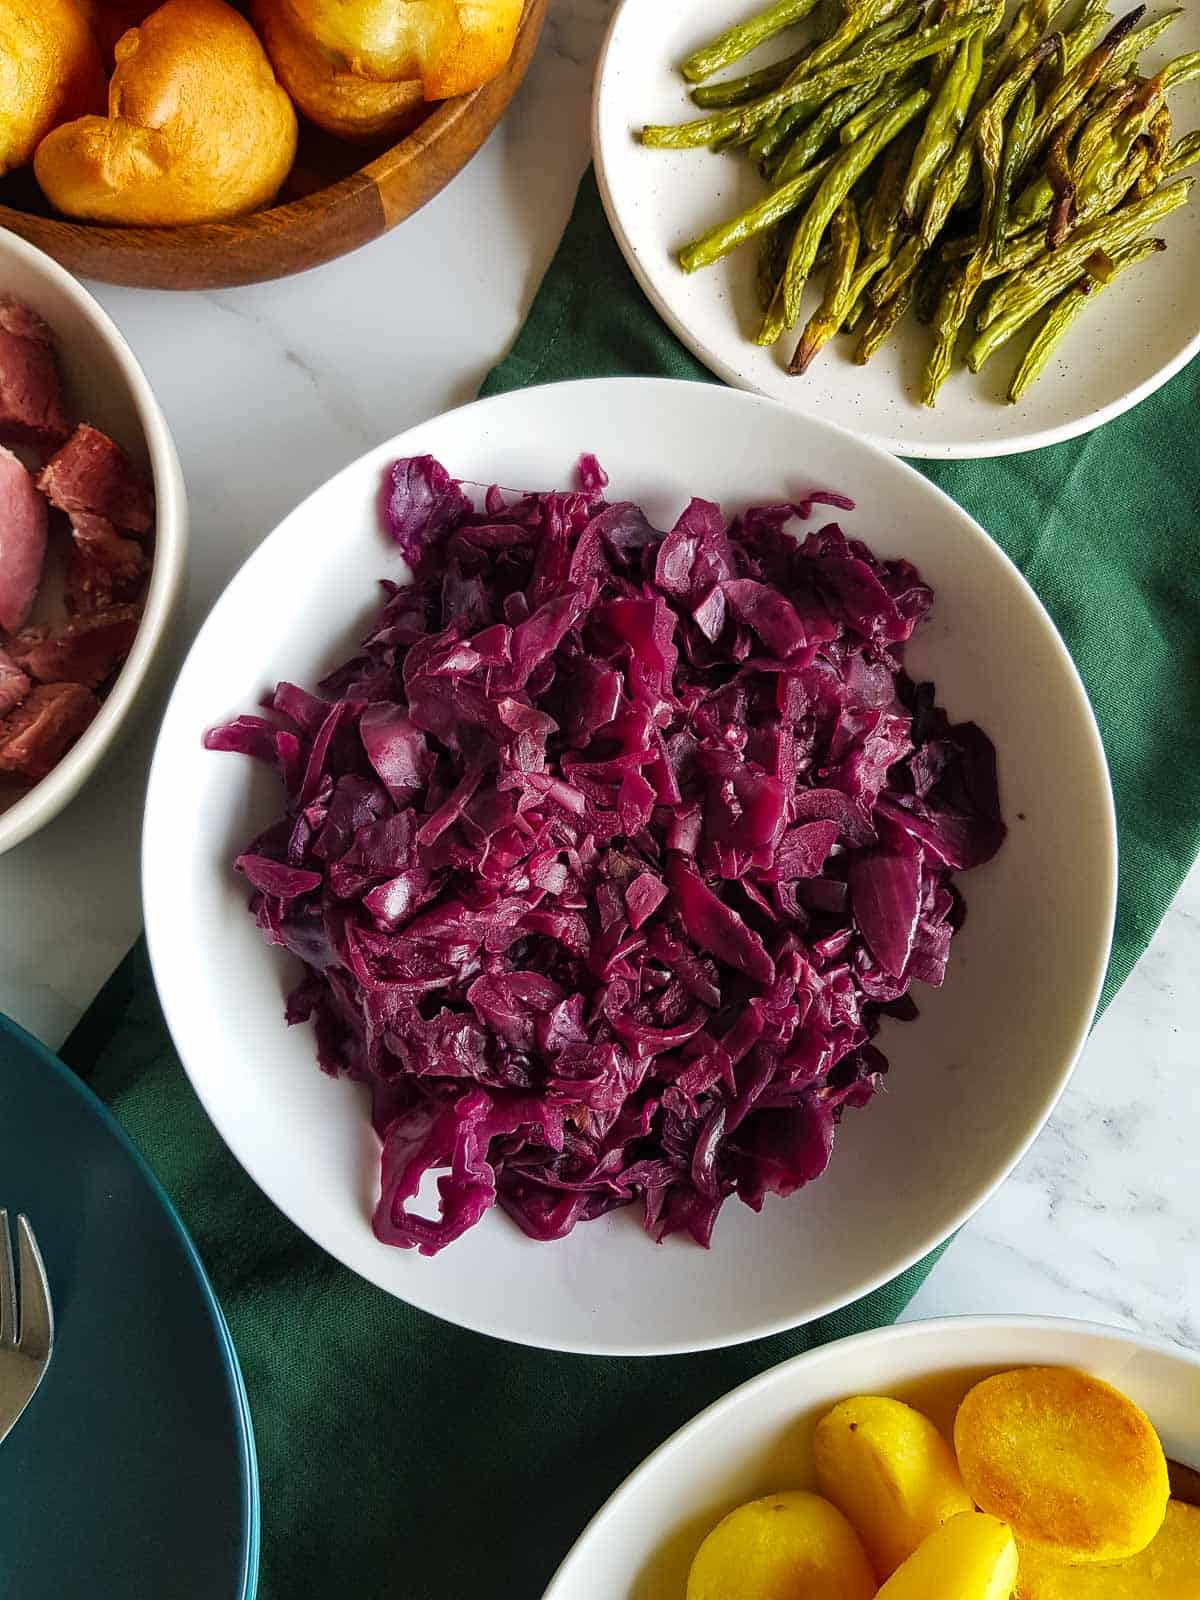 A bowl of slow cooker red cabbage on a table, surrounded by other dishes.